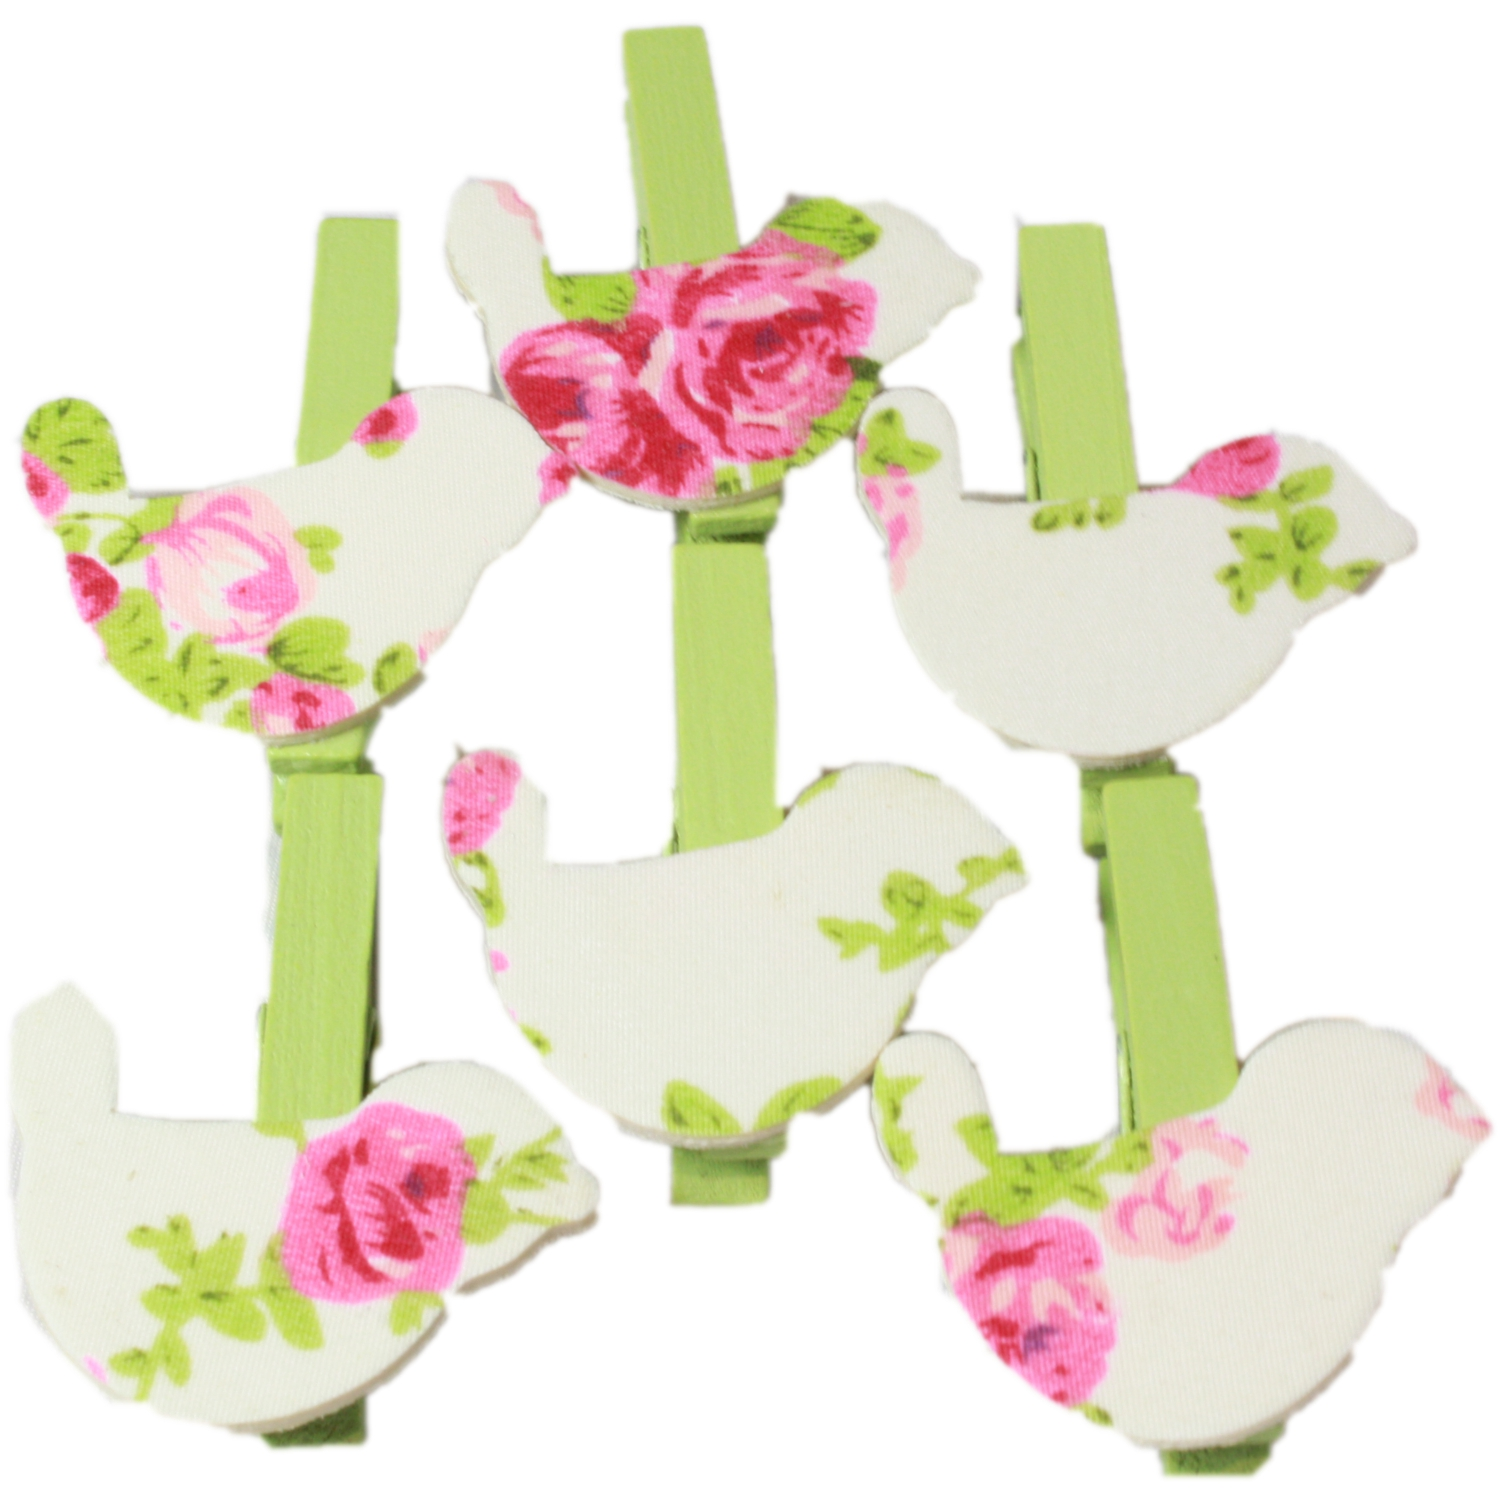 6x Mini Wooden Floral Craft Pegs & Card Pegs in Bird Design